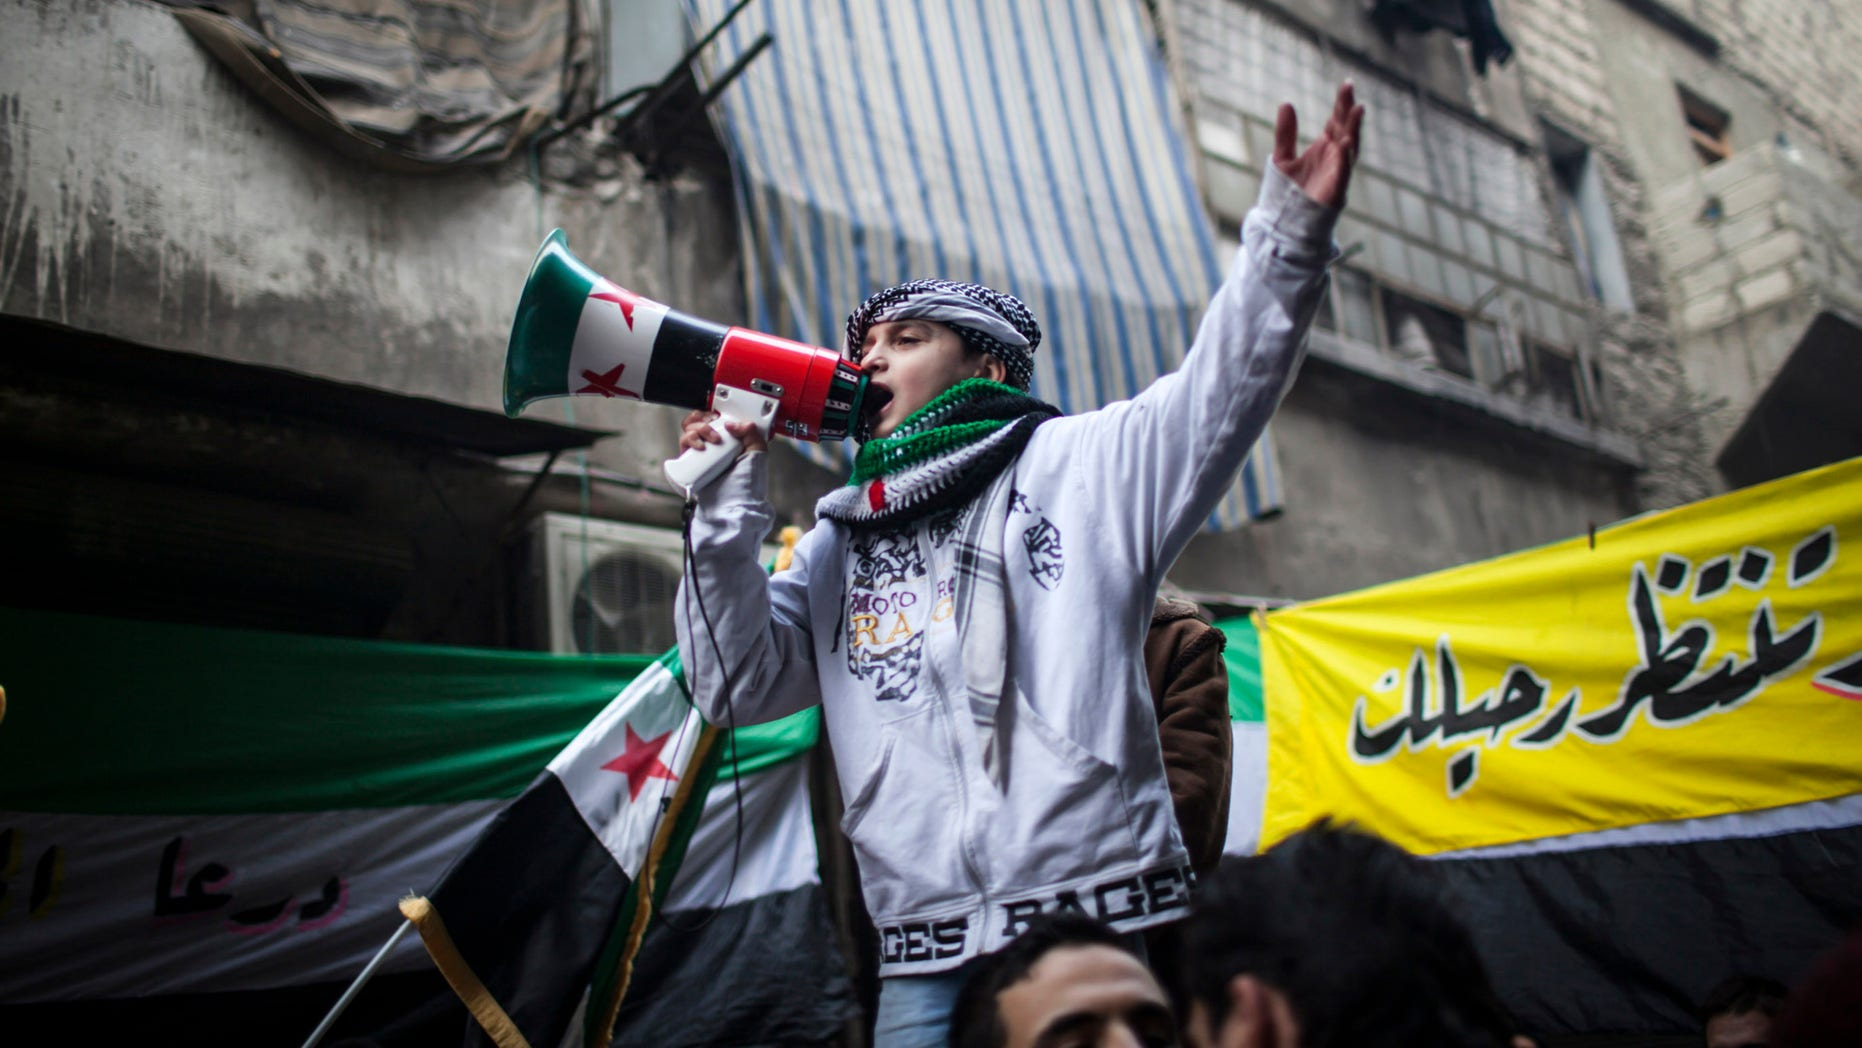 Jan. 4, 2012: A child uses a megaphone to lead others in chanting Free Syrian Army slogans during a demonstration in the neighborhood of Bustan Al-Qasr, Aleppo, Syria.